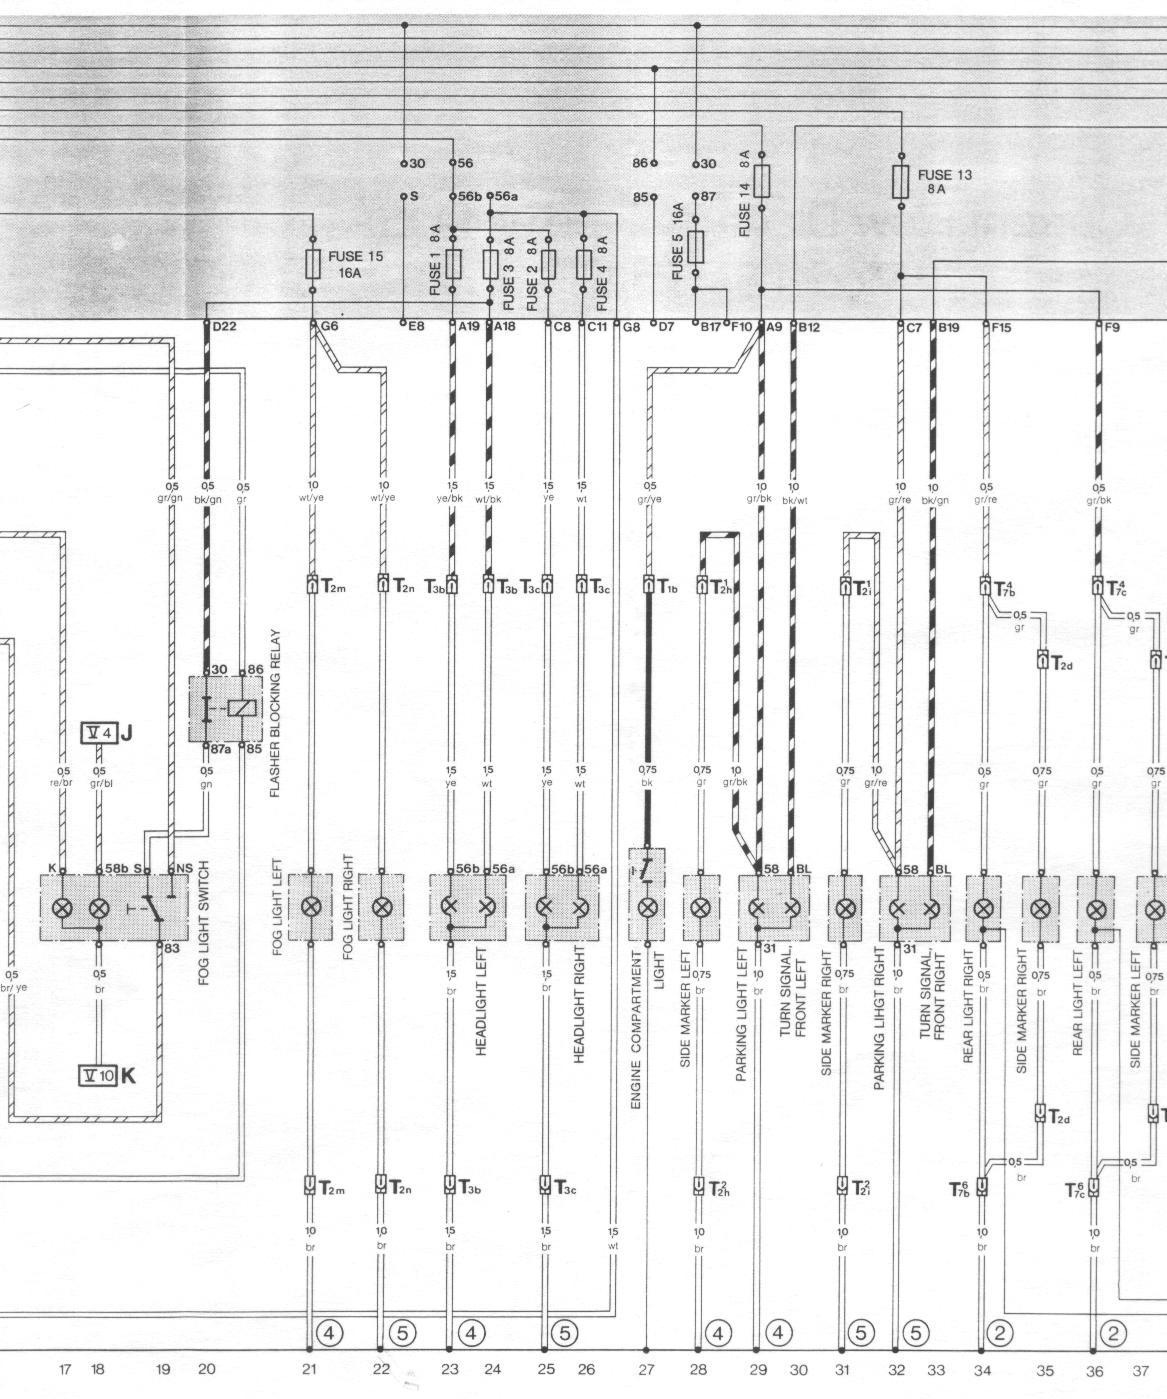 944_84_2_2 pelican parts porsche 924 944 electrical diagrams porsche 944 wiring diagram pdf at aneh.co